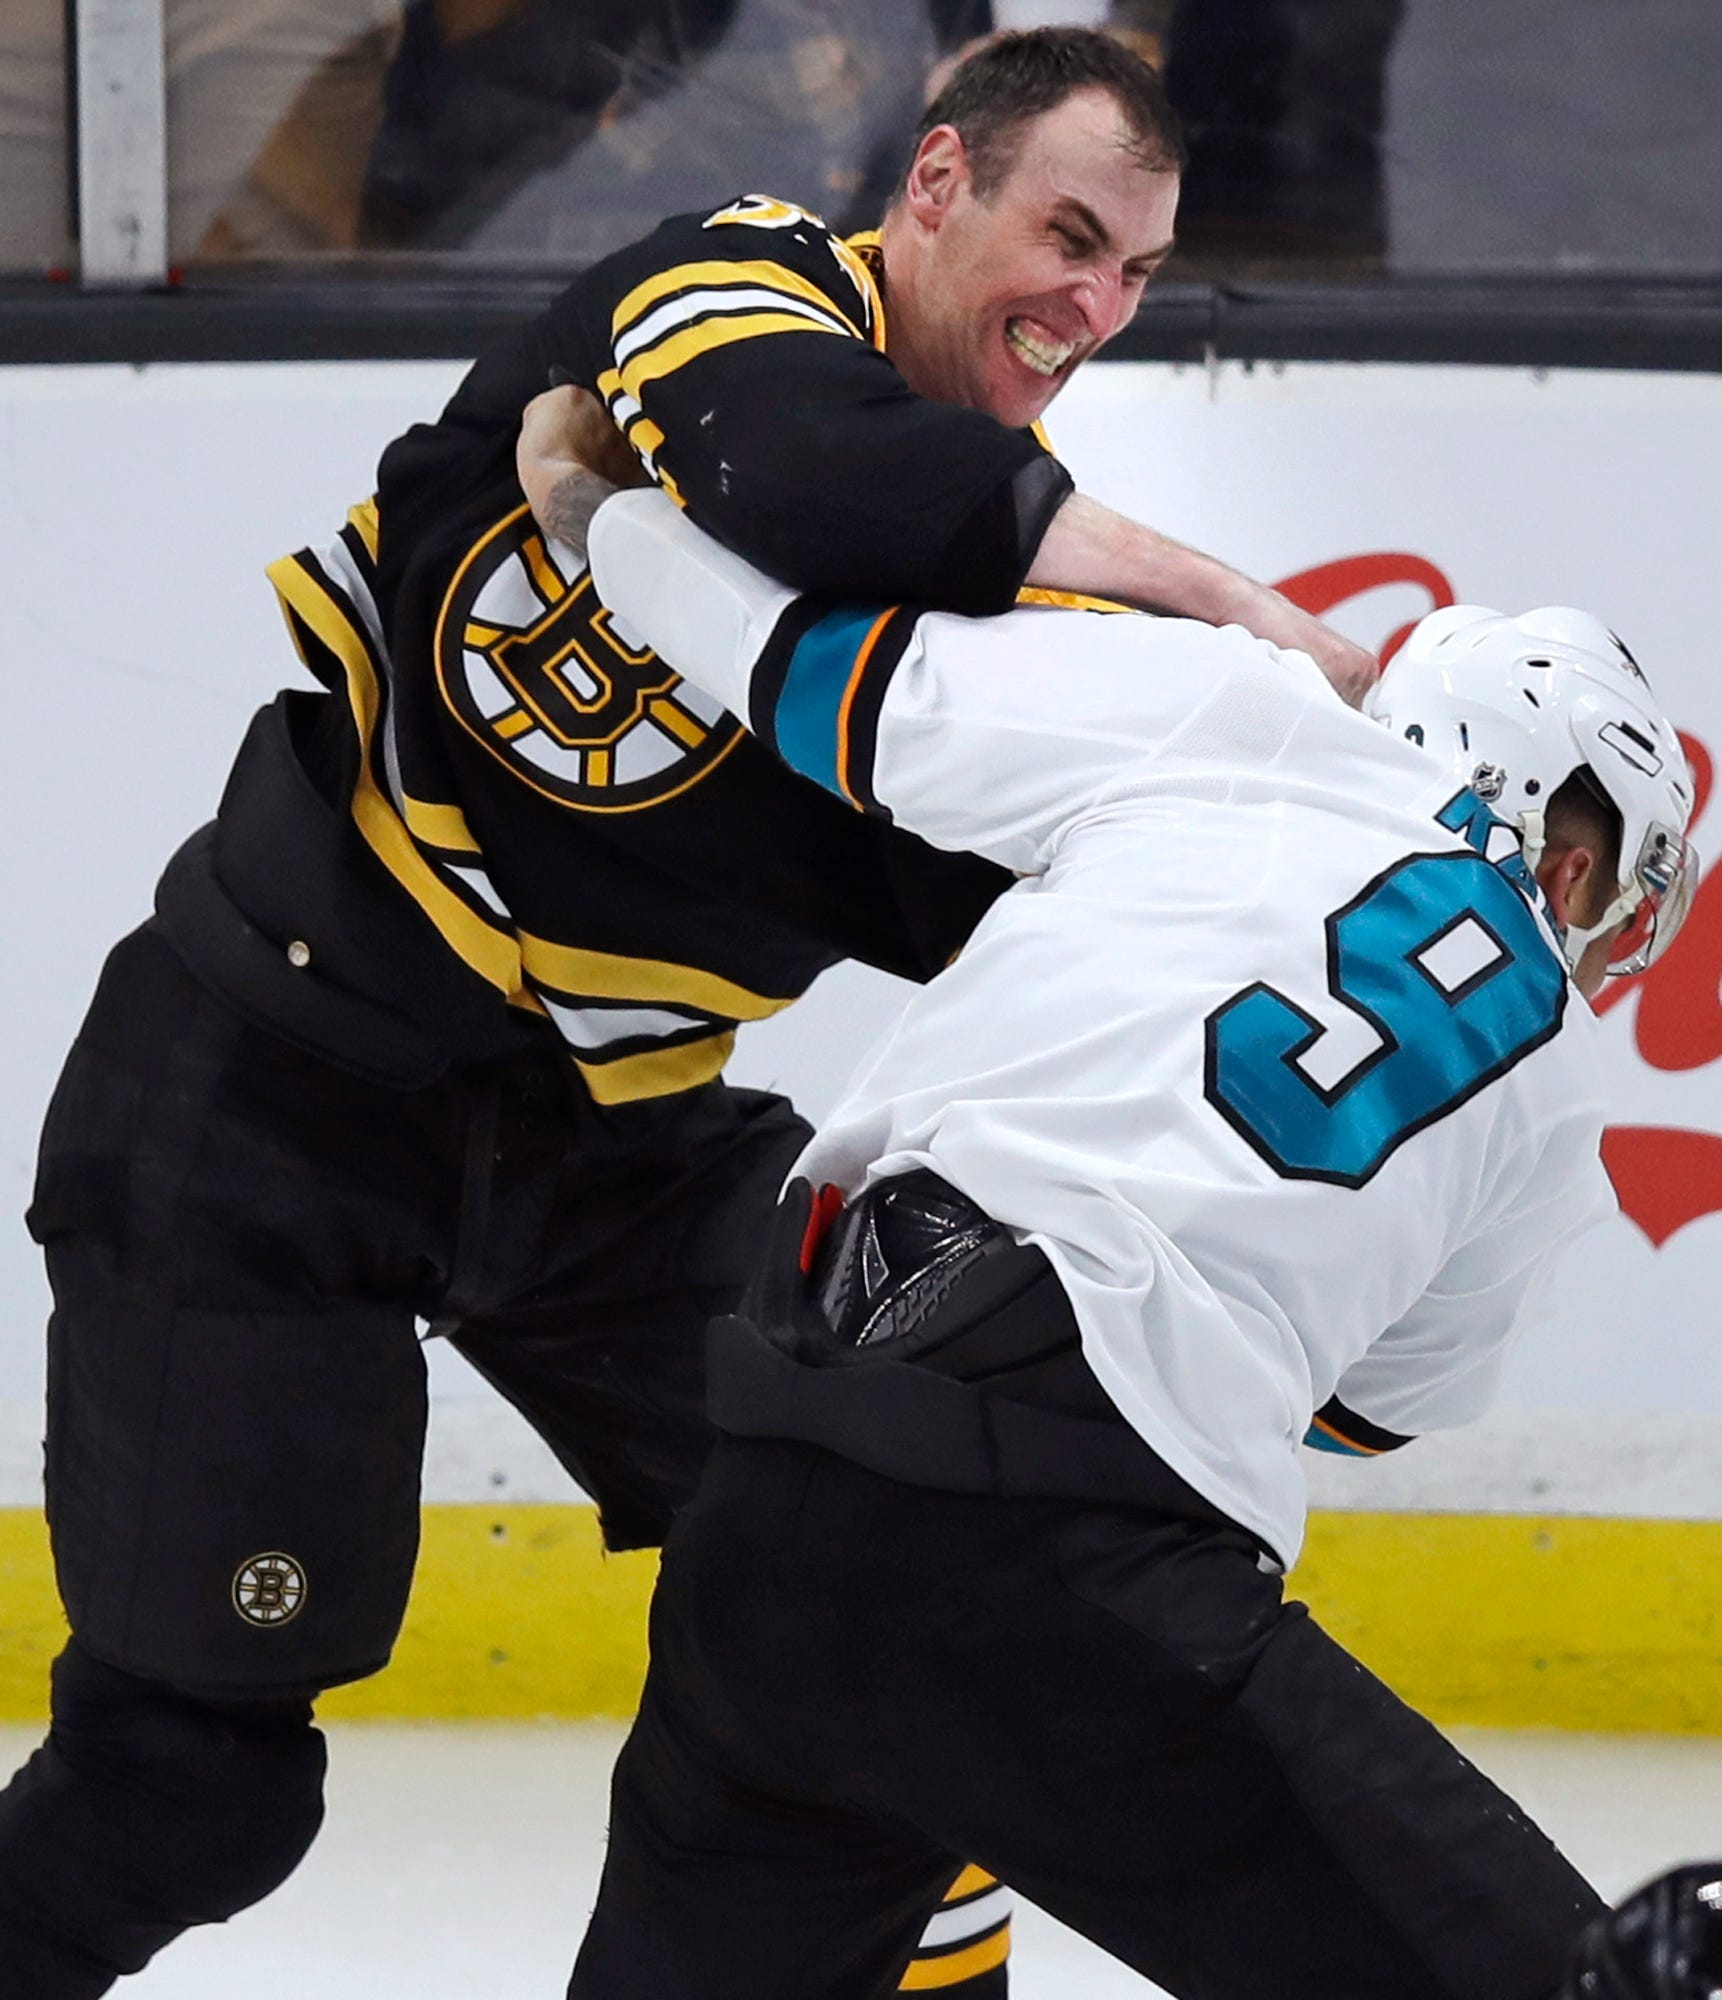 Angry Evander Kane tosses 6-foot-9 Zdeno Chara to the ice